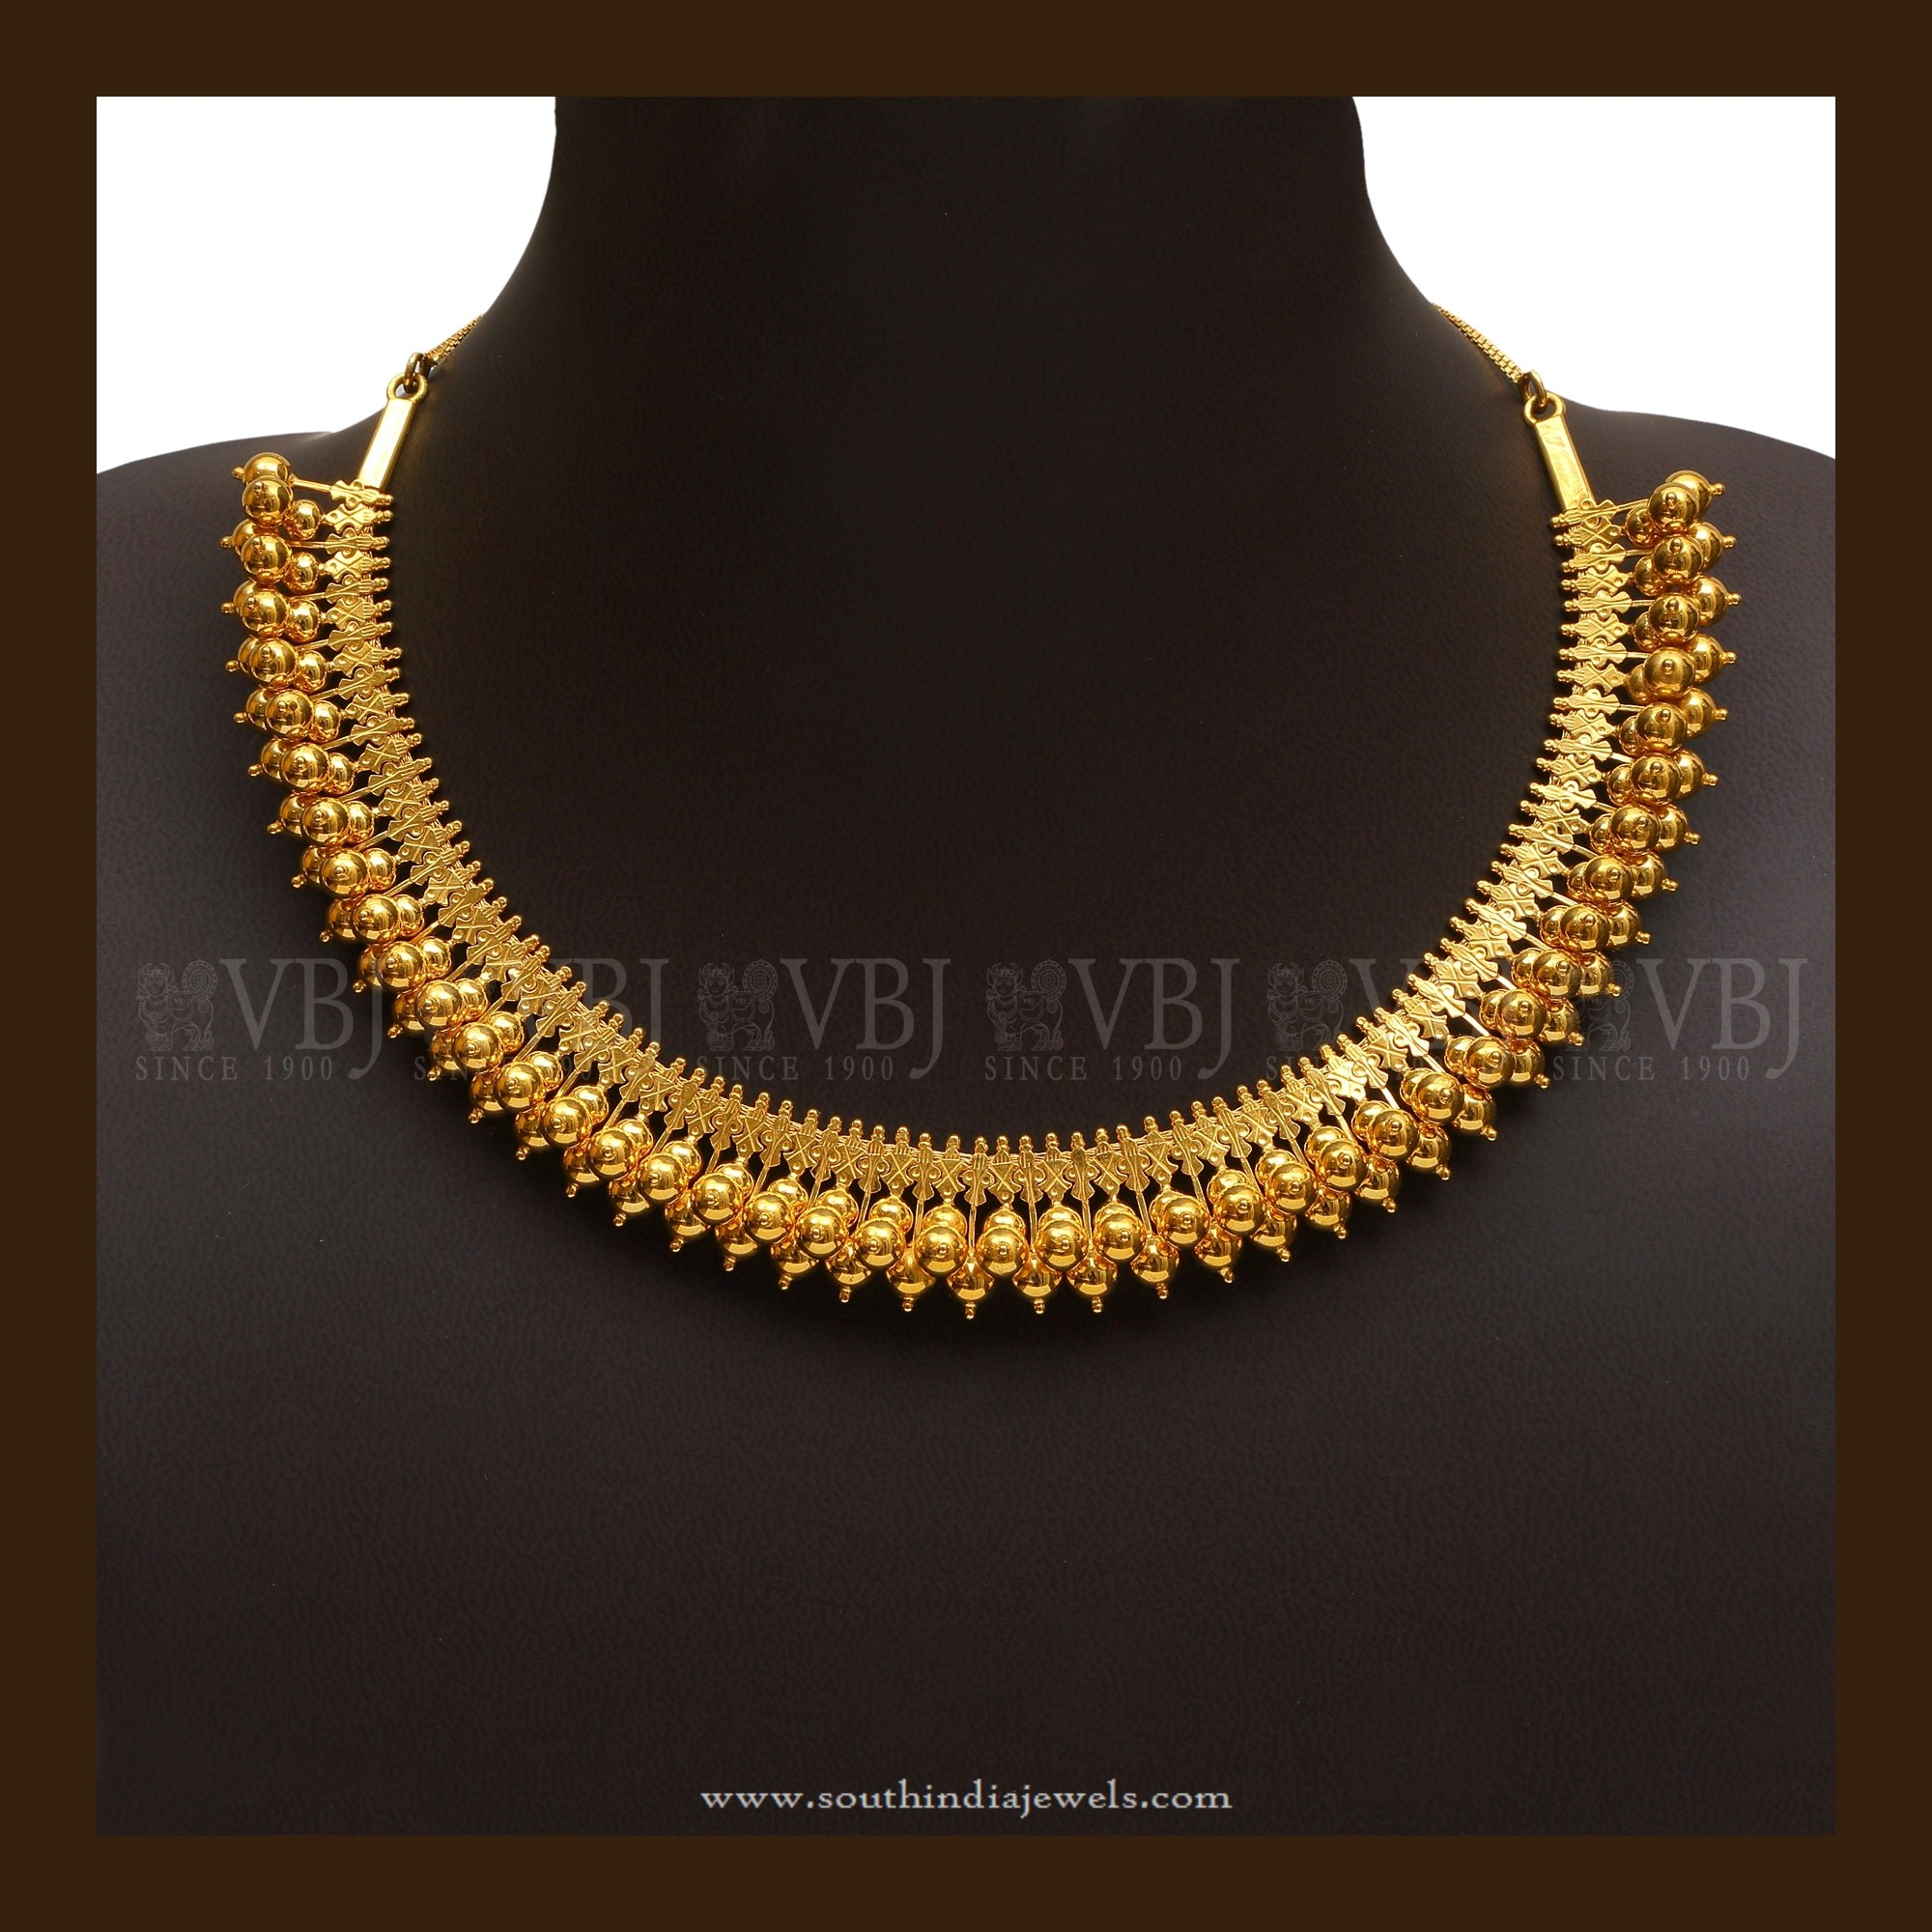 Best Of Latest Gold Necklace Designs Catalogue | Jewellry\'s Website